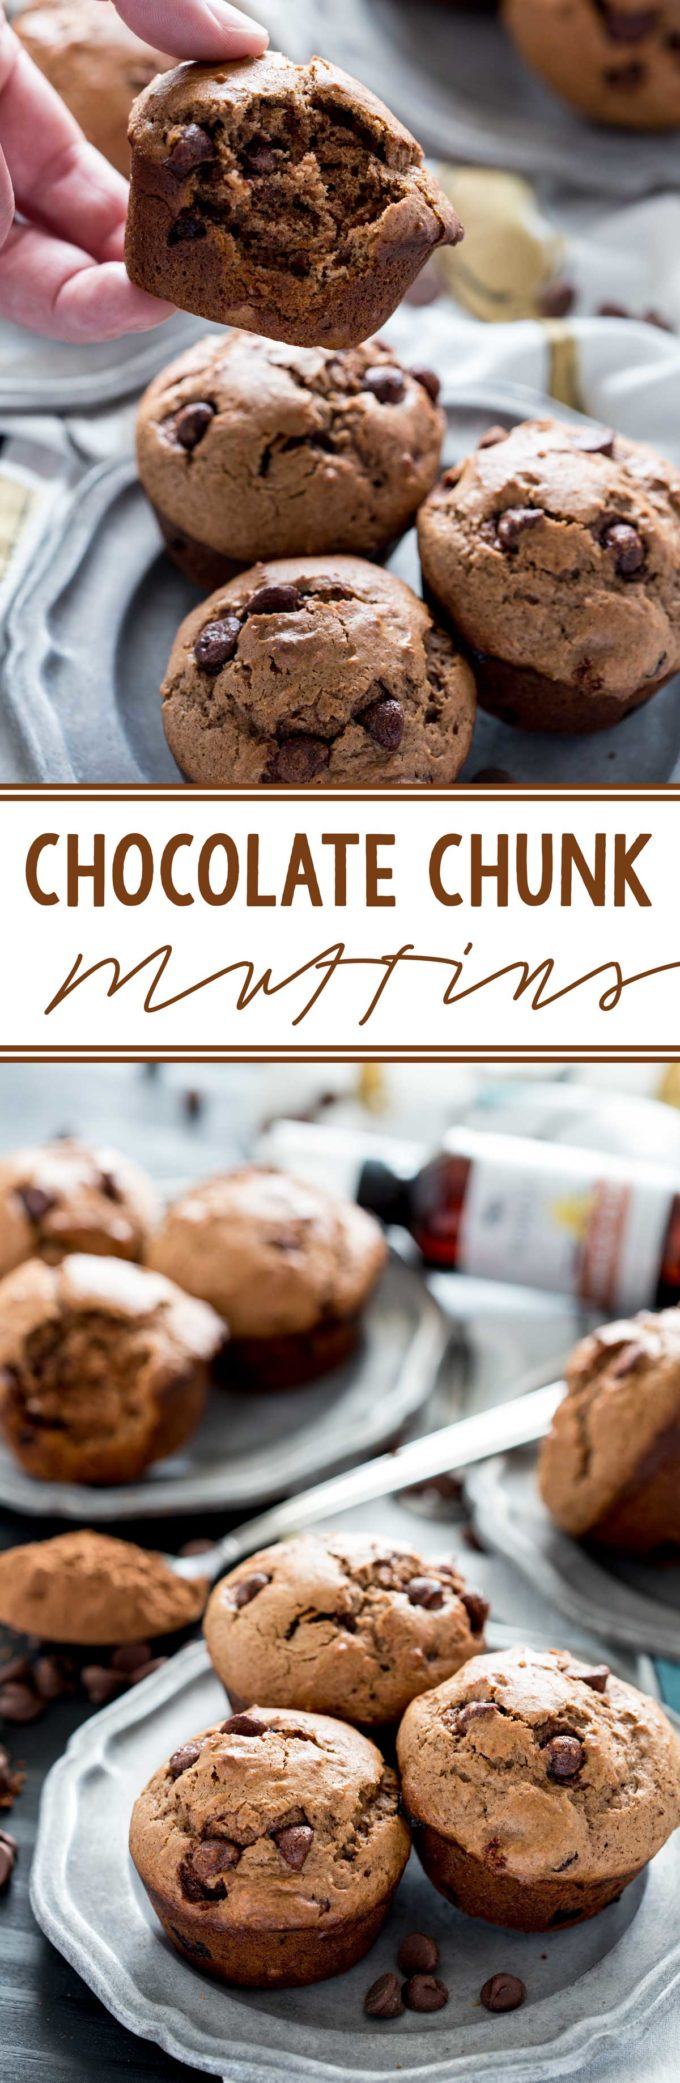 Chocolate-chunk-muffin-pin